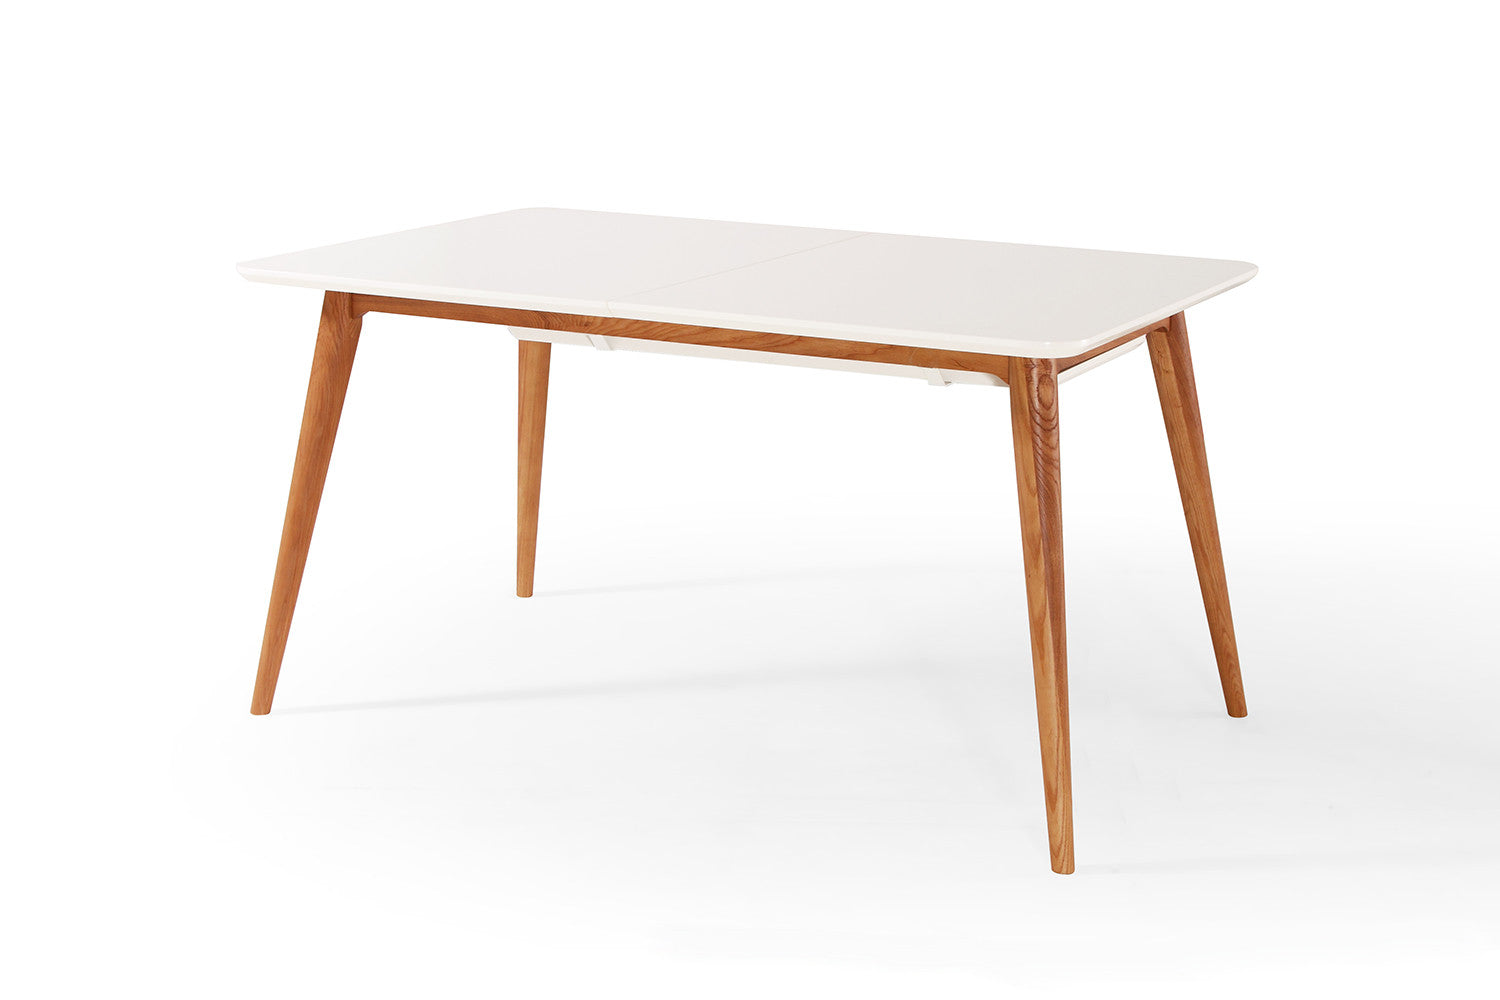 Table de salle manger extensible scandinave wyna dewarens for Table a manger extensible design